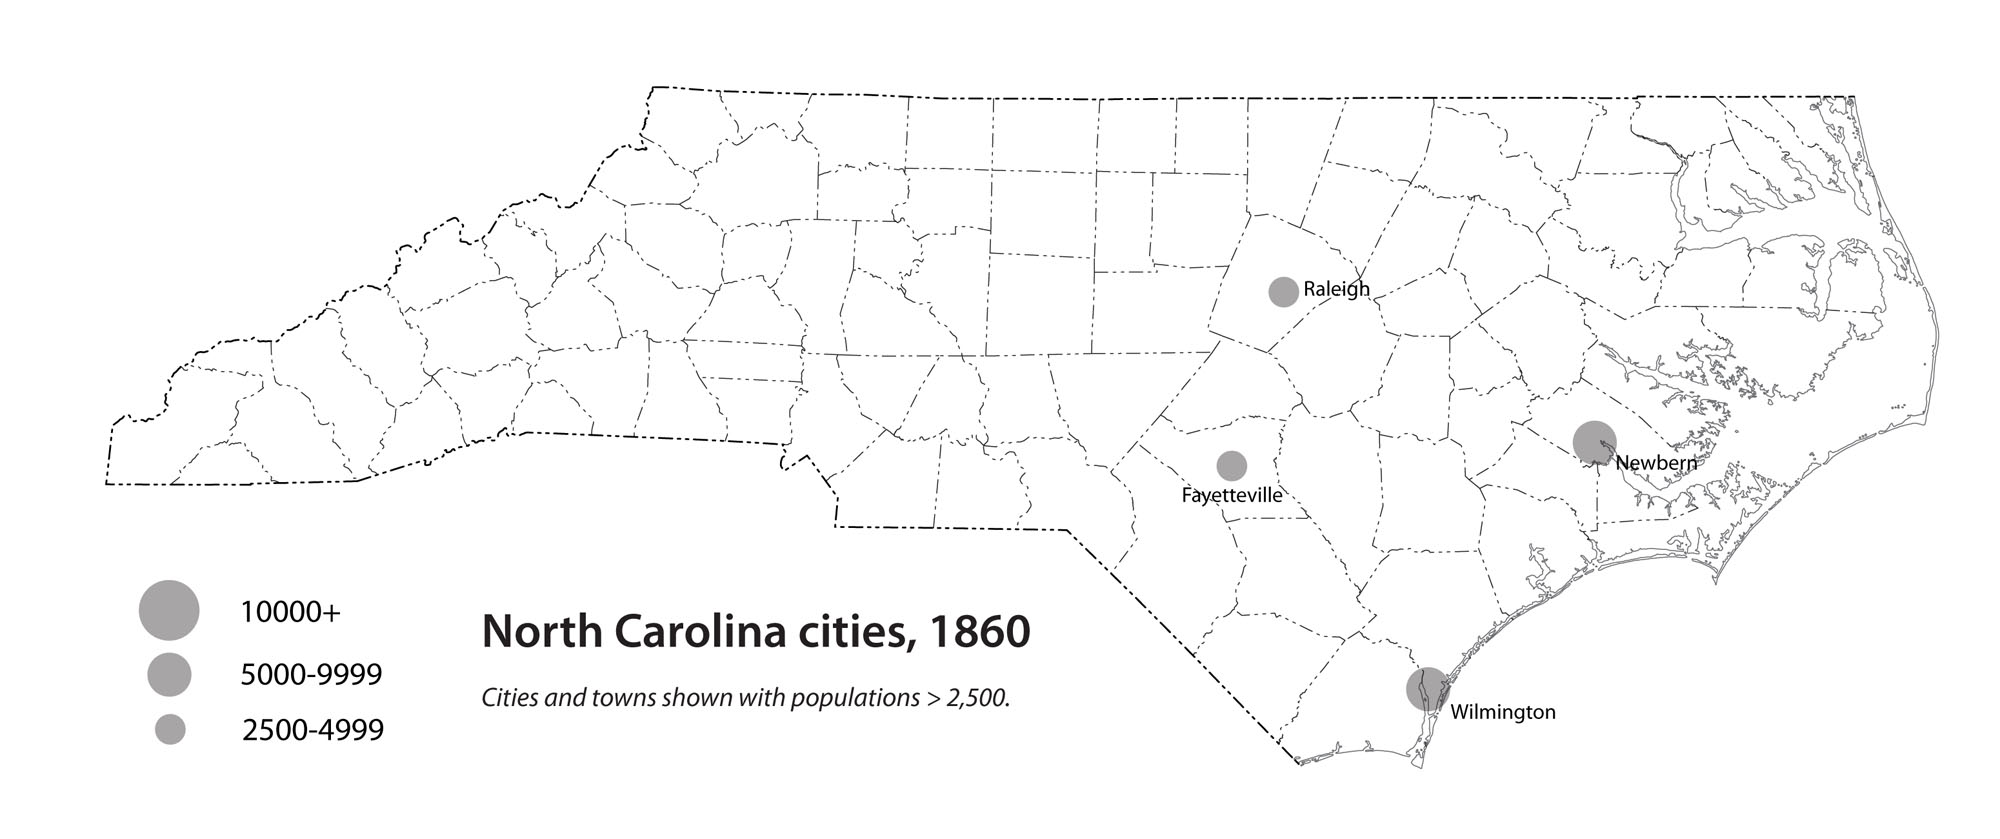 North Carolina cities, 1860